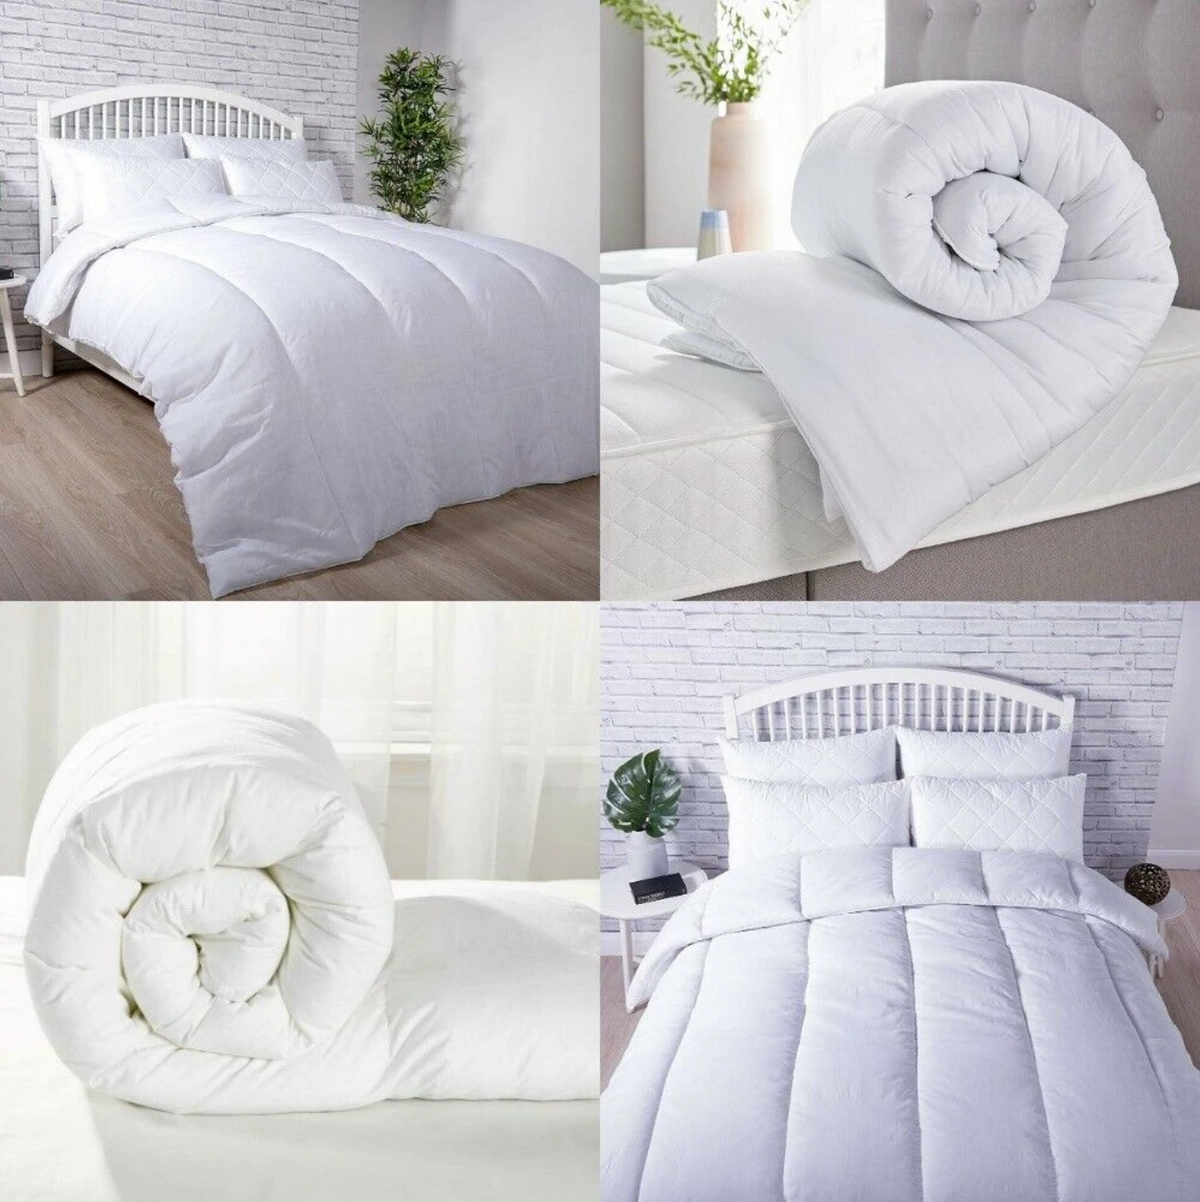 Hollowfibre Quilts and Duvets with 100% Cotton Cover